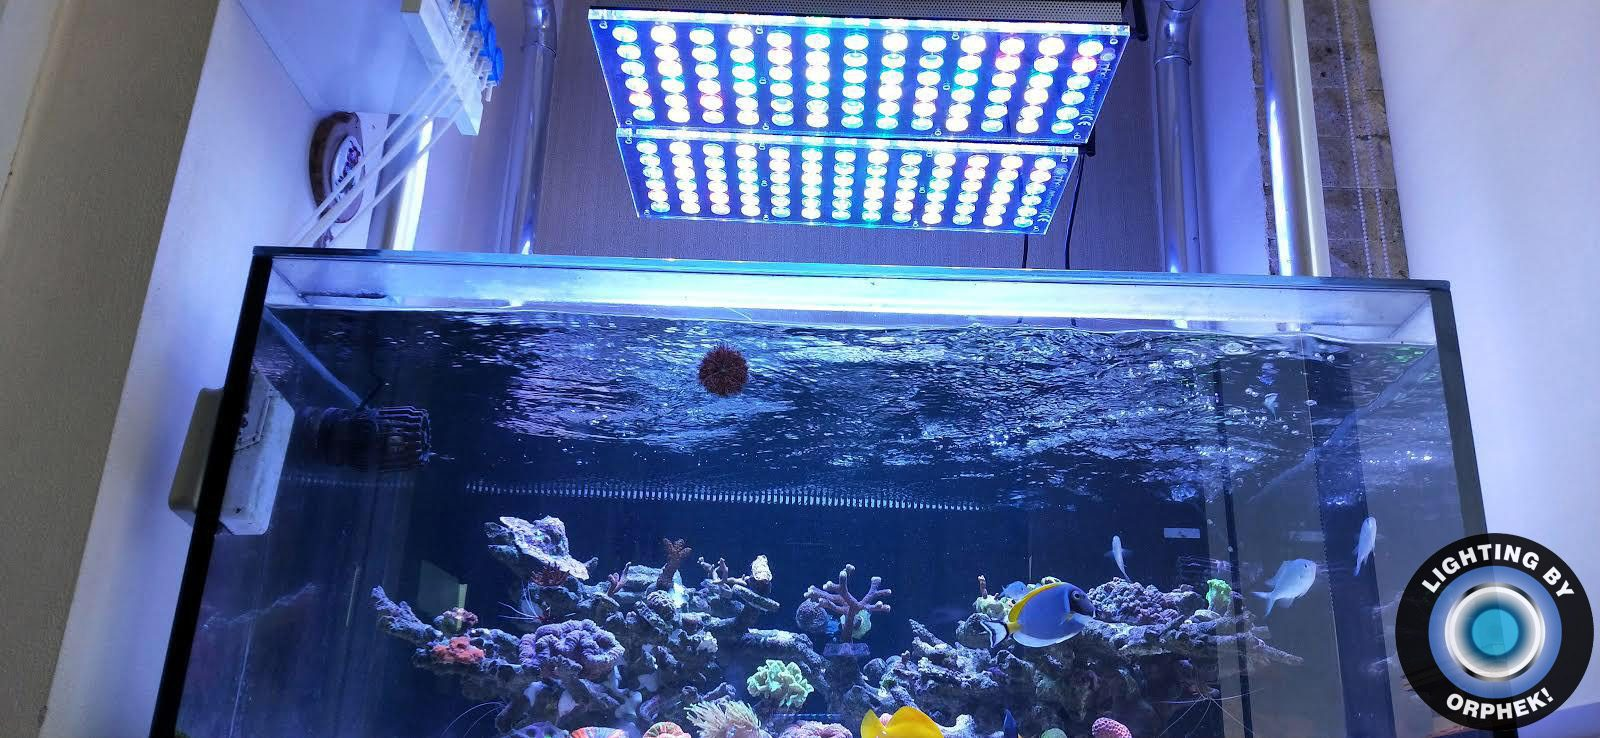 best LED aquarium lighting 2020